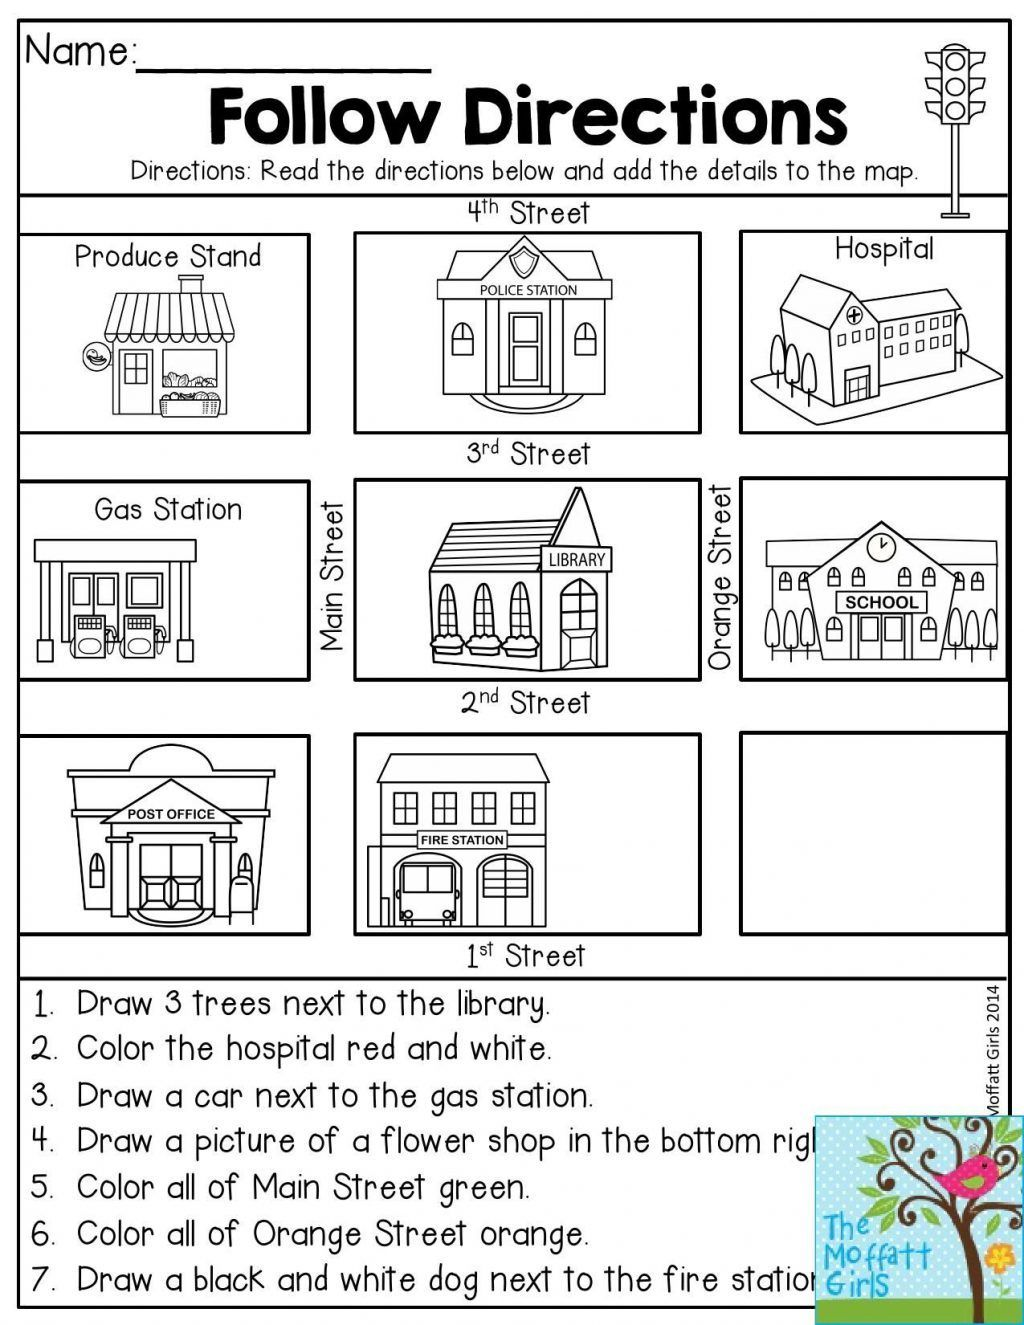 Free Map Skills Worksheets Math Worksheets Free Printable Following Directions 5th Grade April